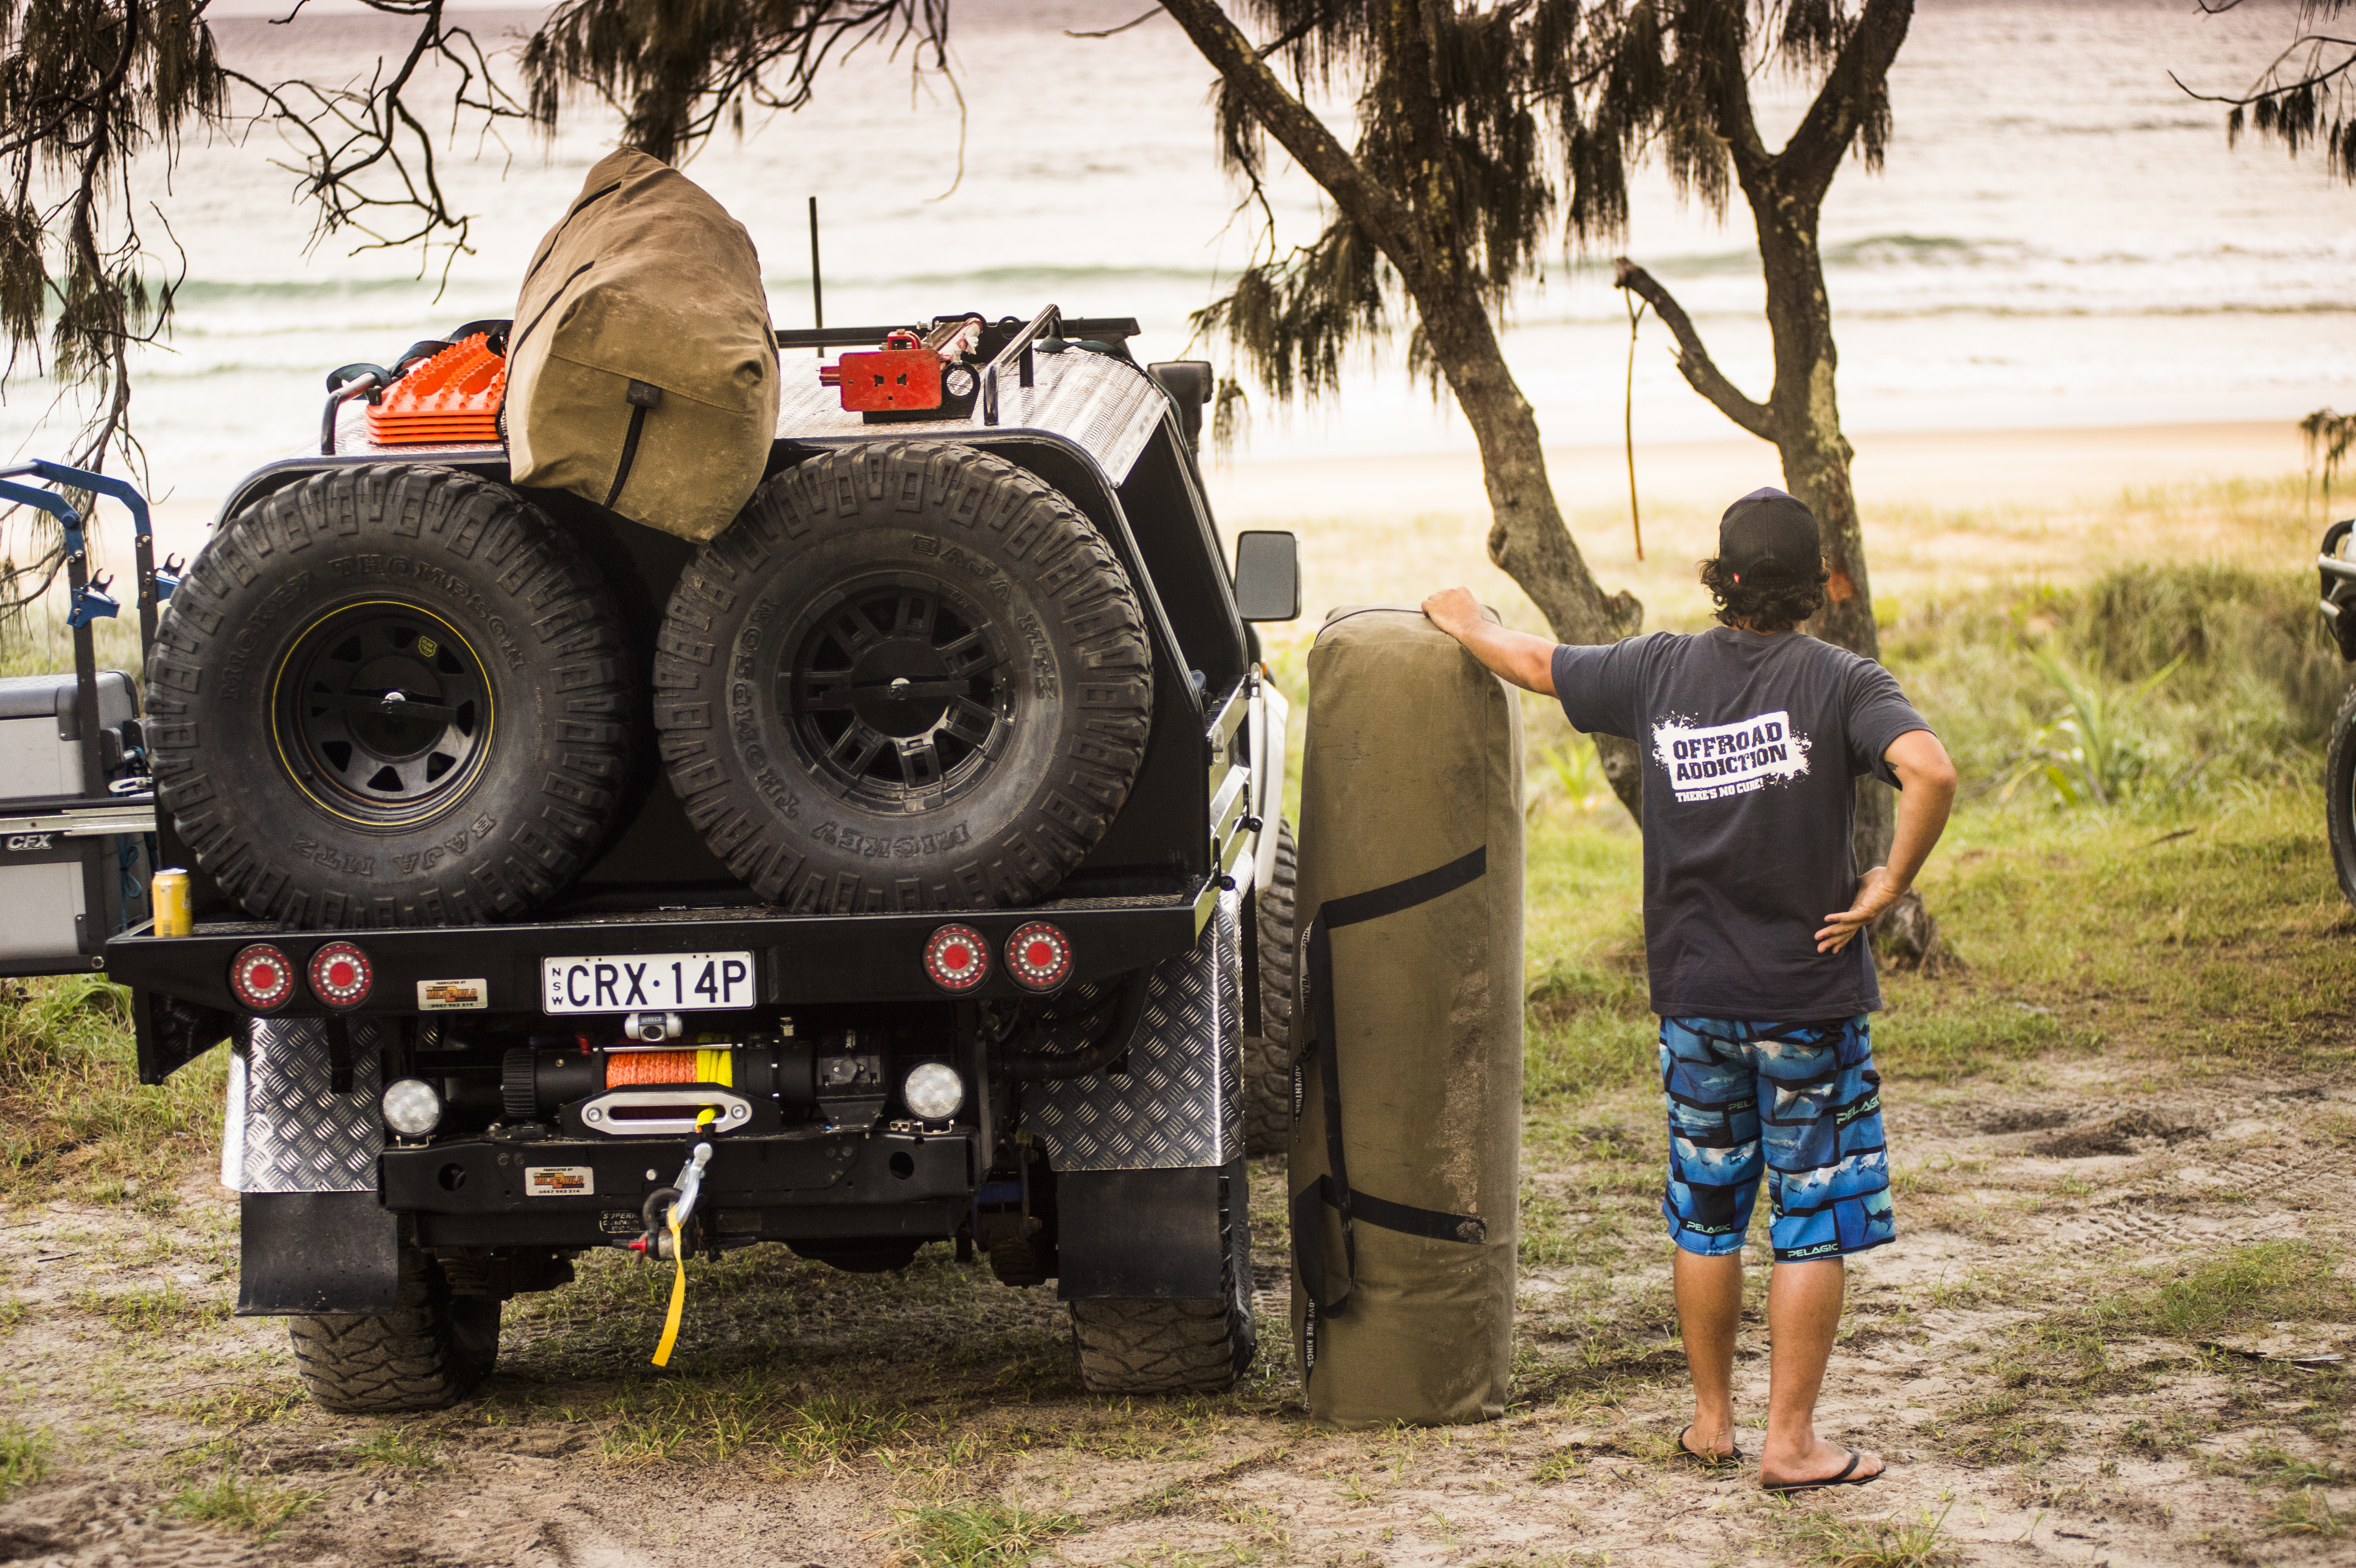 5 Best Bits of gear for your new 4WD! - image 150119-Fraser-Island-DVD_Lifestyle_185 on https://www.4wdsupacentre.com.au/news